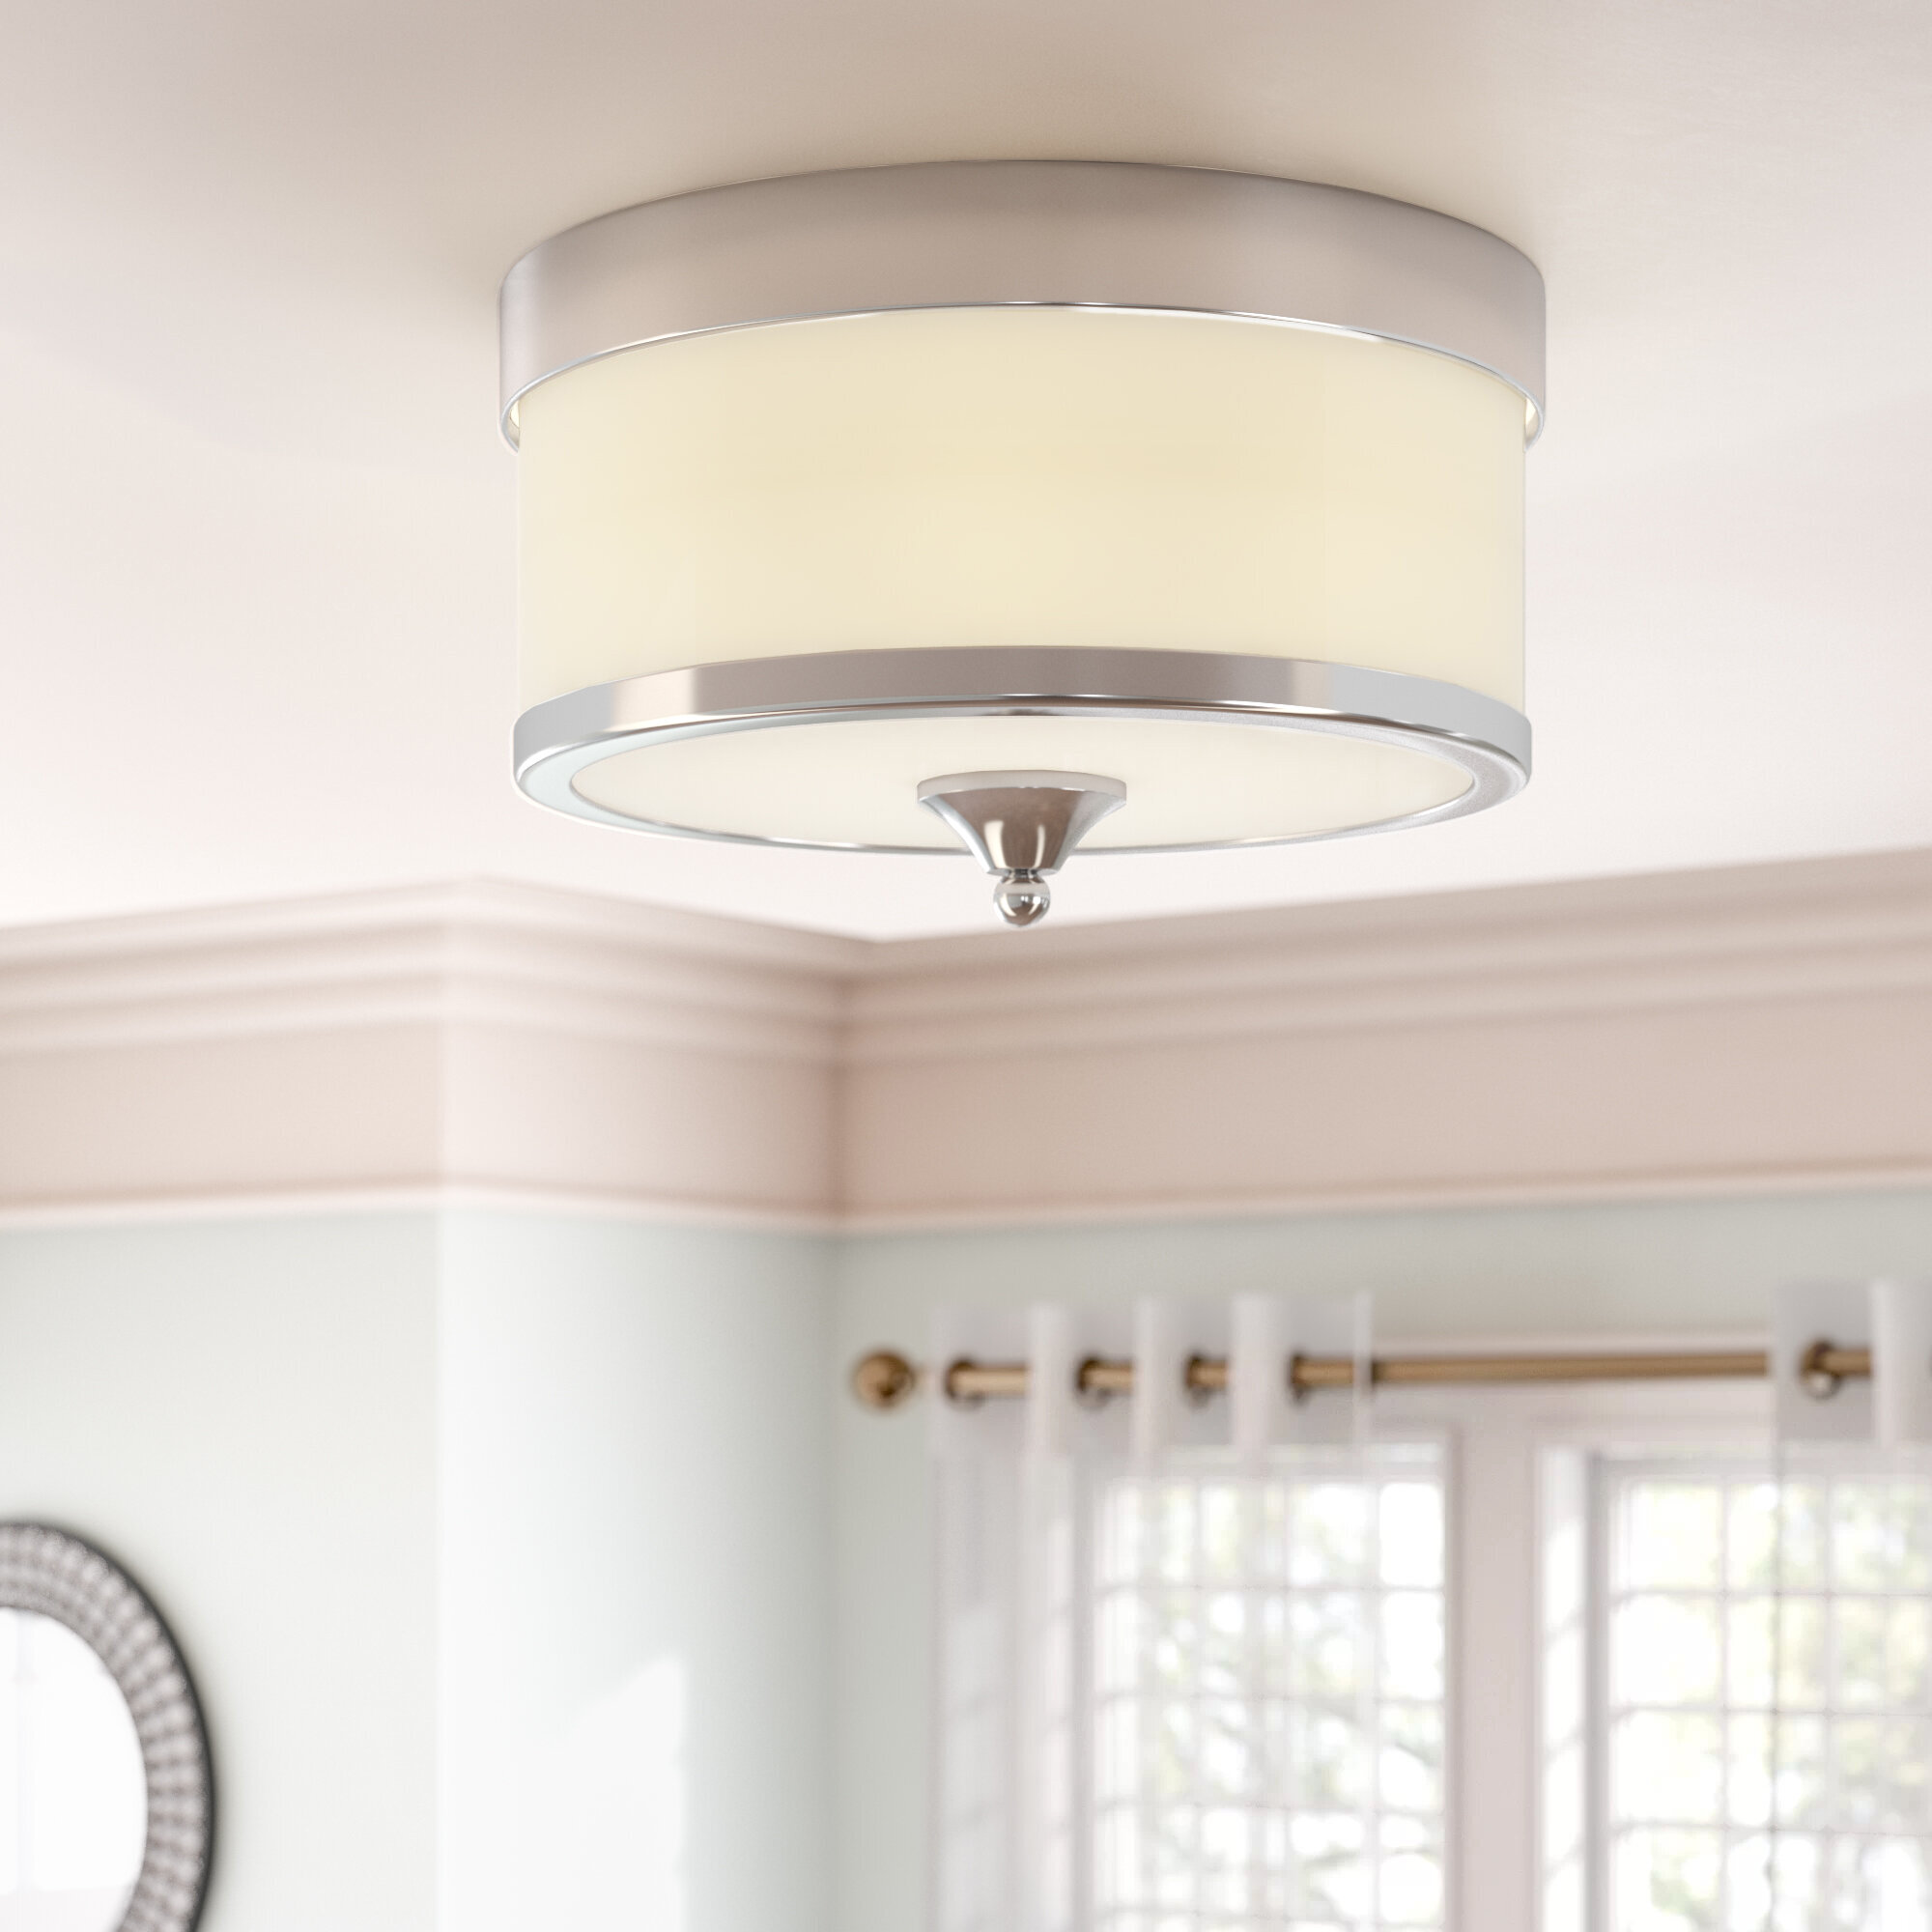 Willa arlo interiors carlitos 3 light flush mount reviews wayfair